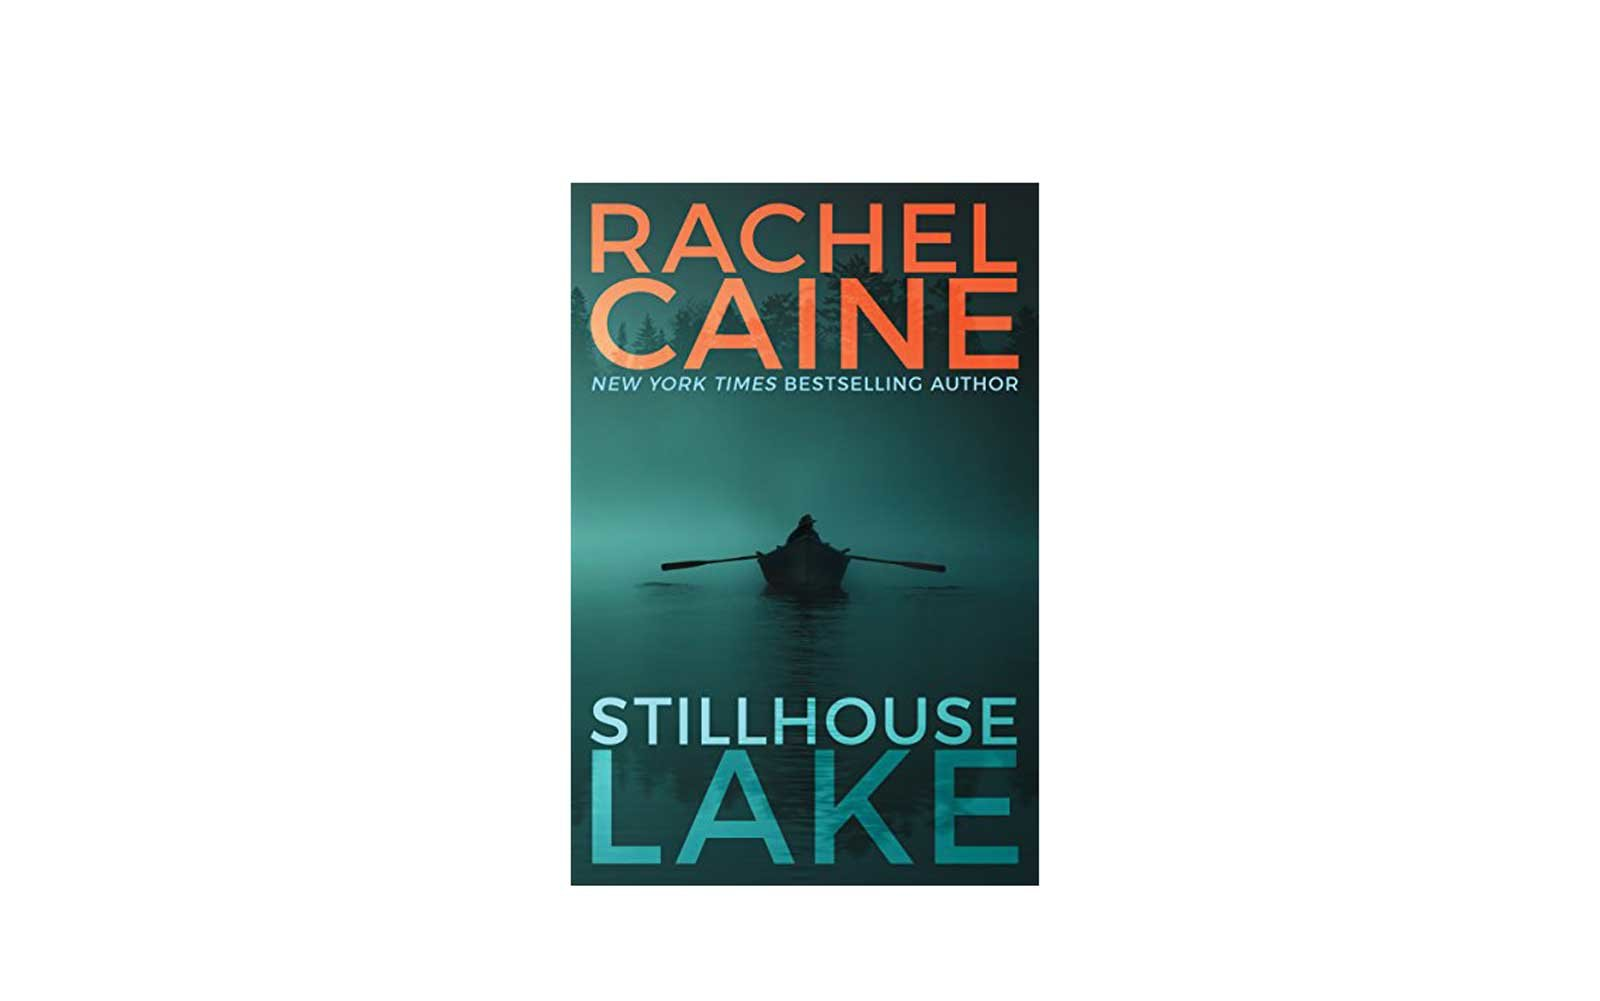 20 most popular Kindle books 2017 Stillhouse Lake